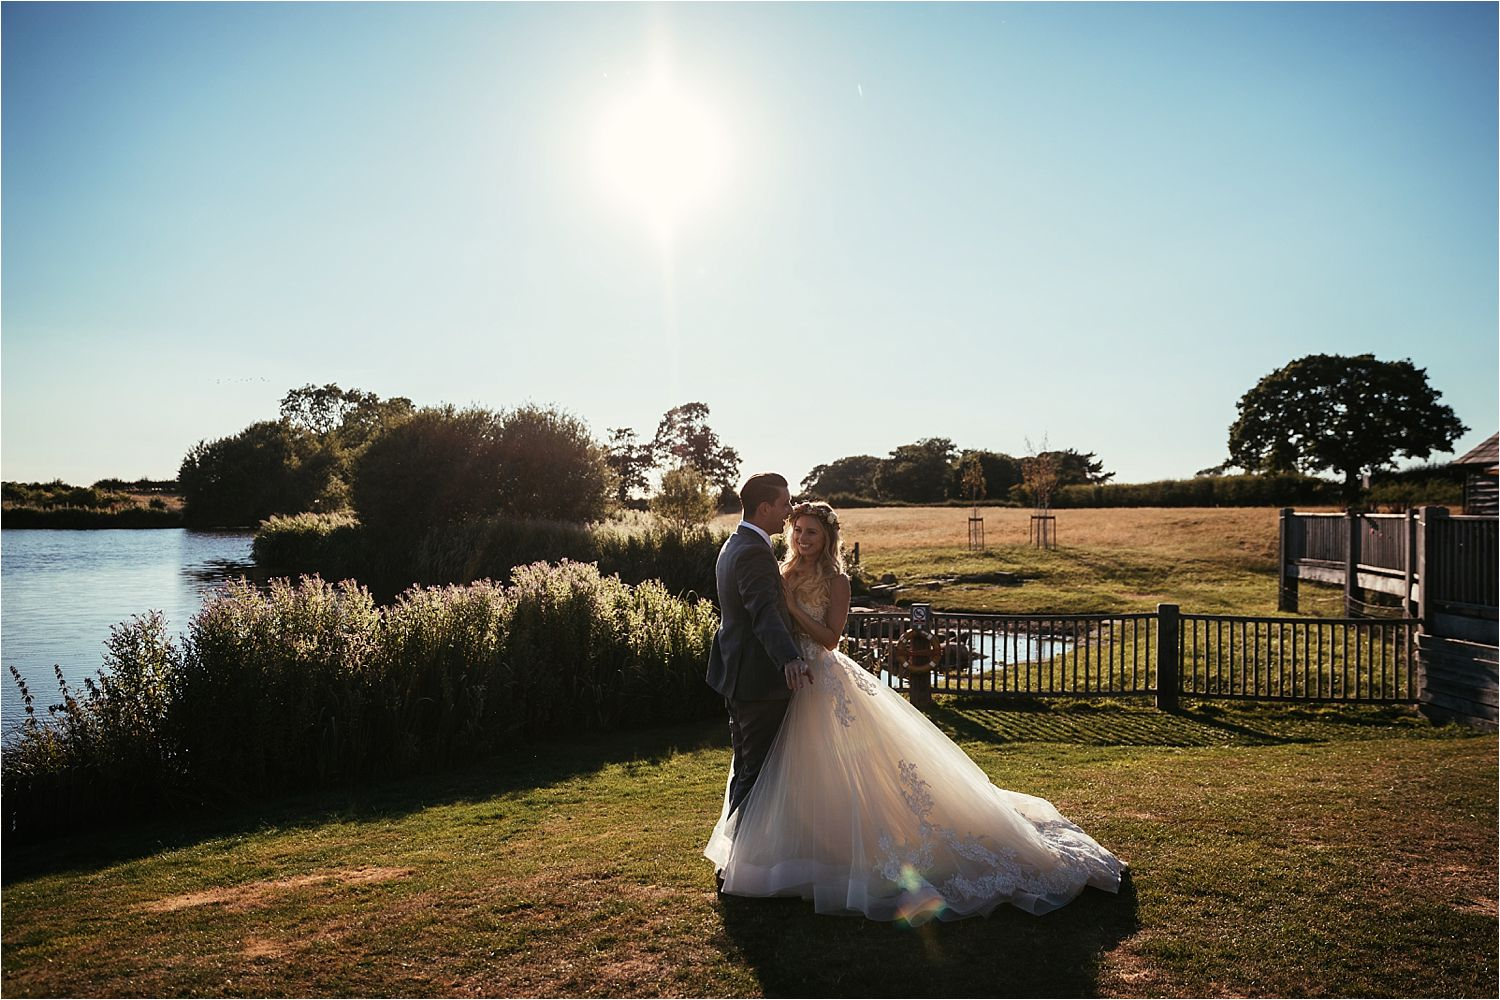 Bride and groom at sunset at their Cheshire wedding, Sandhole Oak Barn